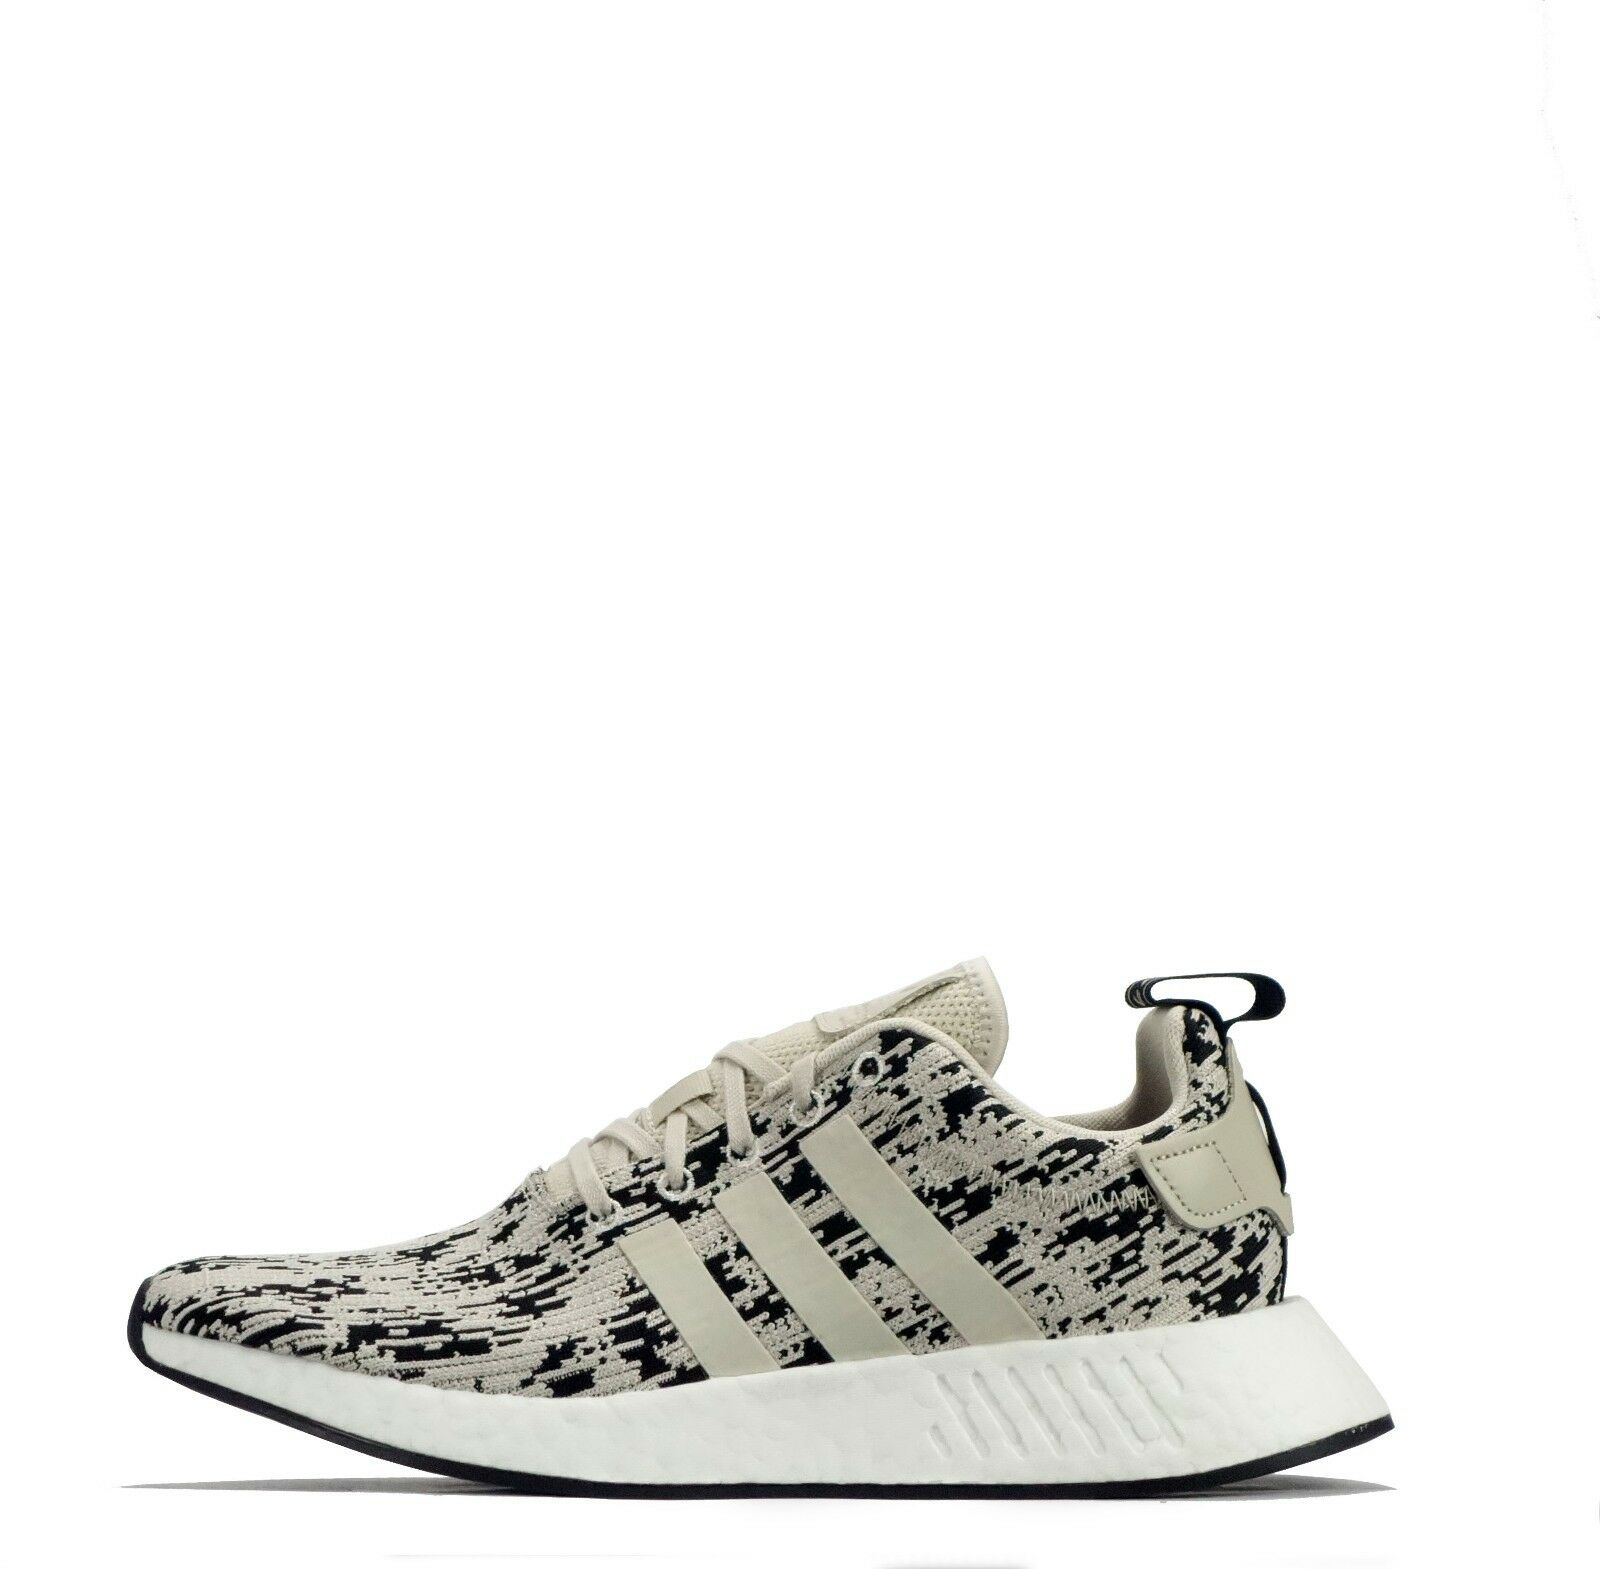 ADIDAS BOOST M Gfaible  homme / Femme TRAINERS  130